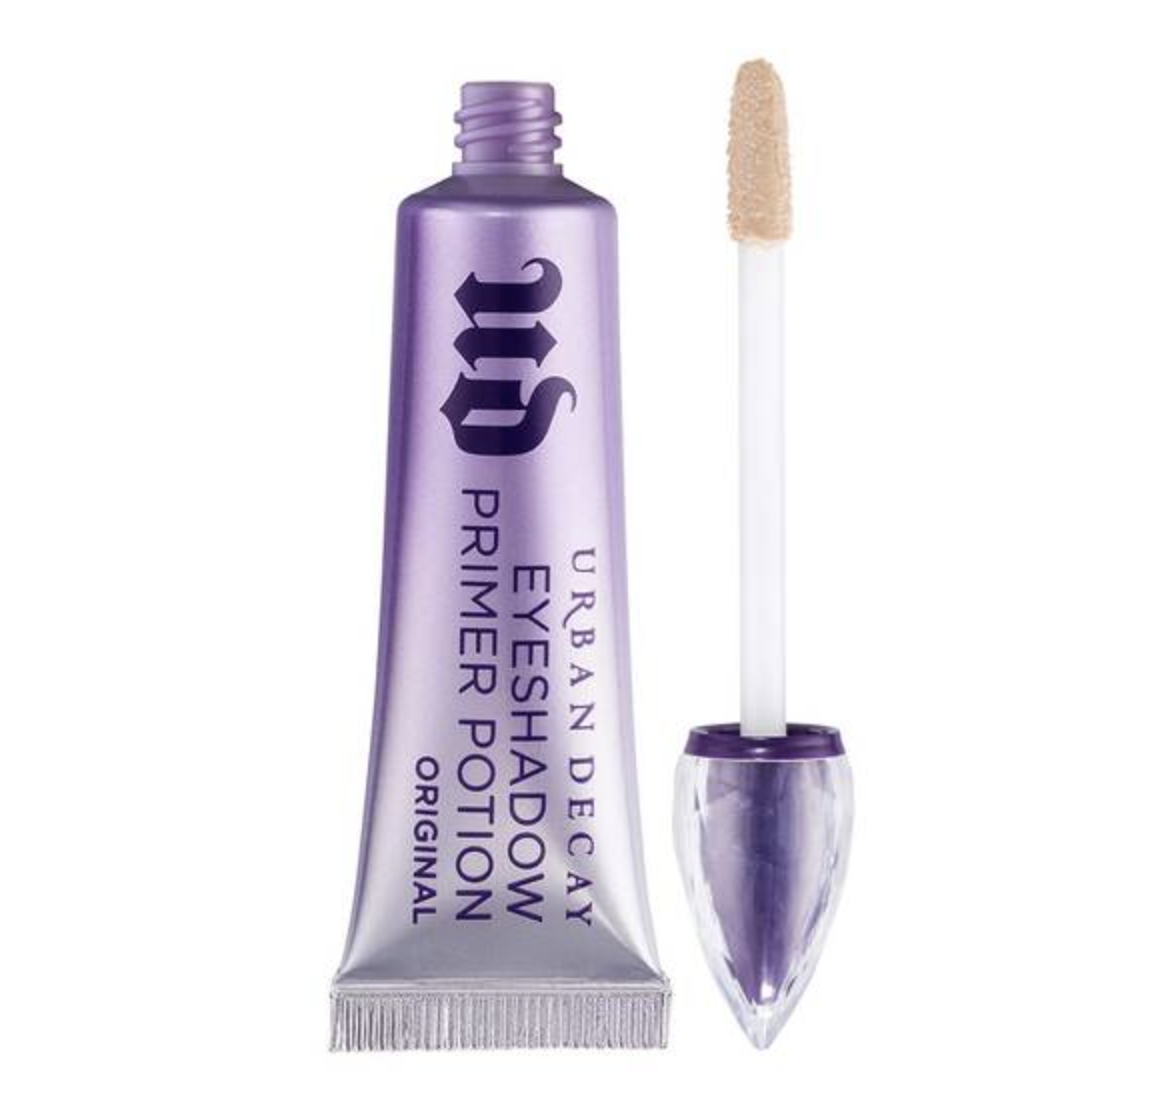 Праймер для век, Urban Decay Eyeshadow Primer Potion